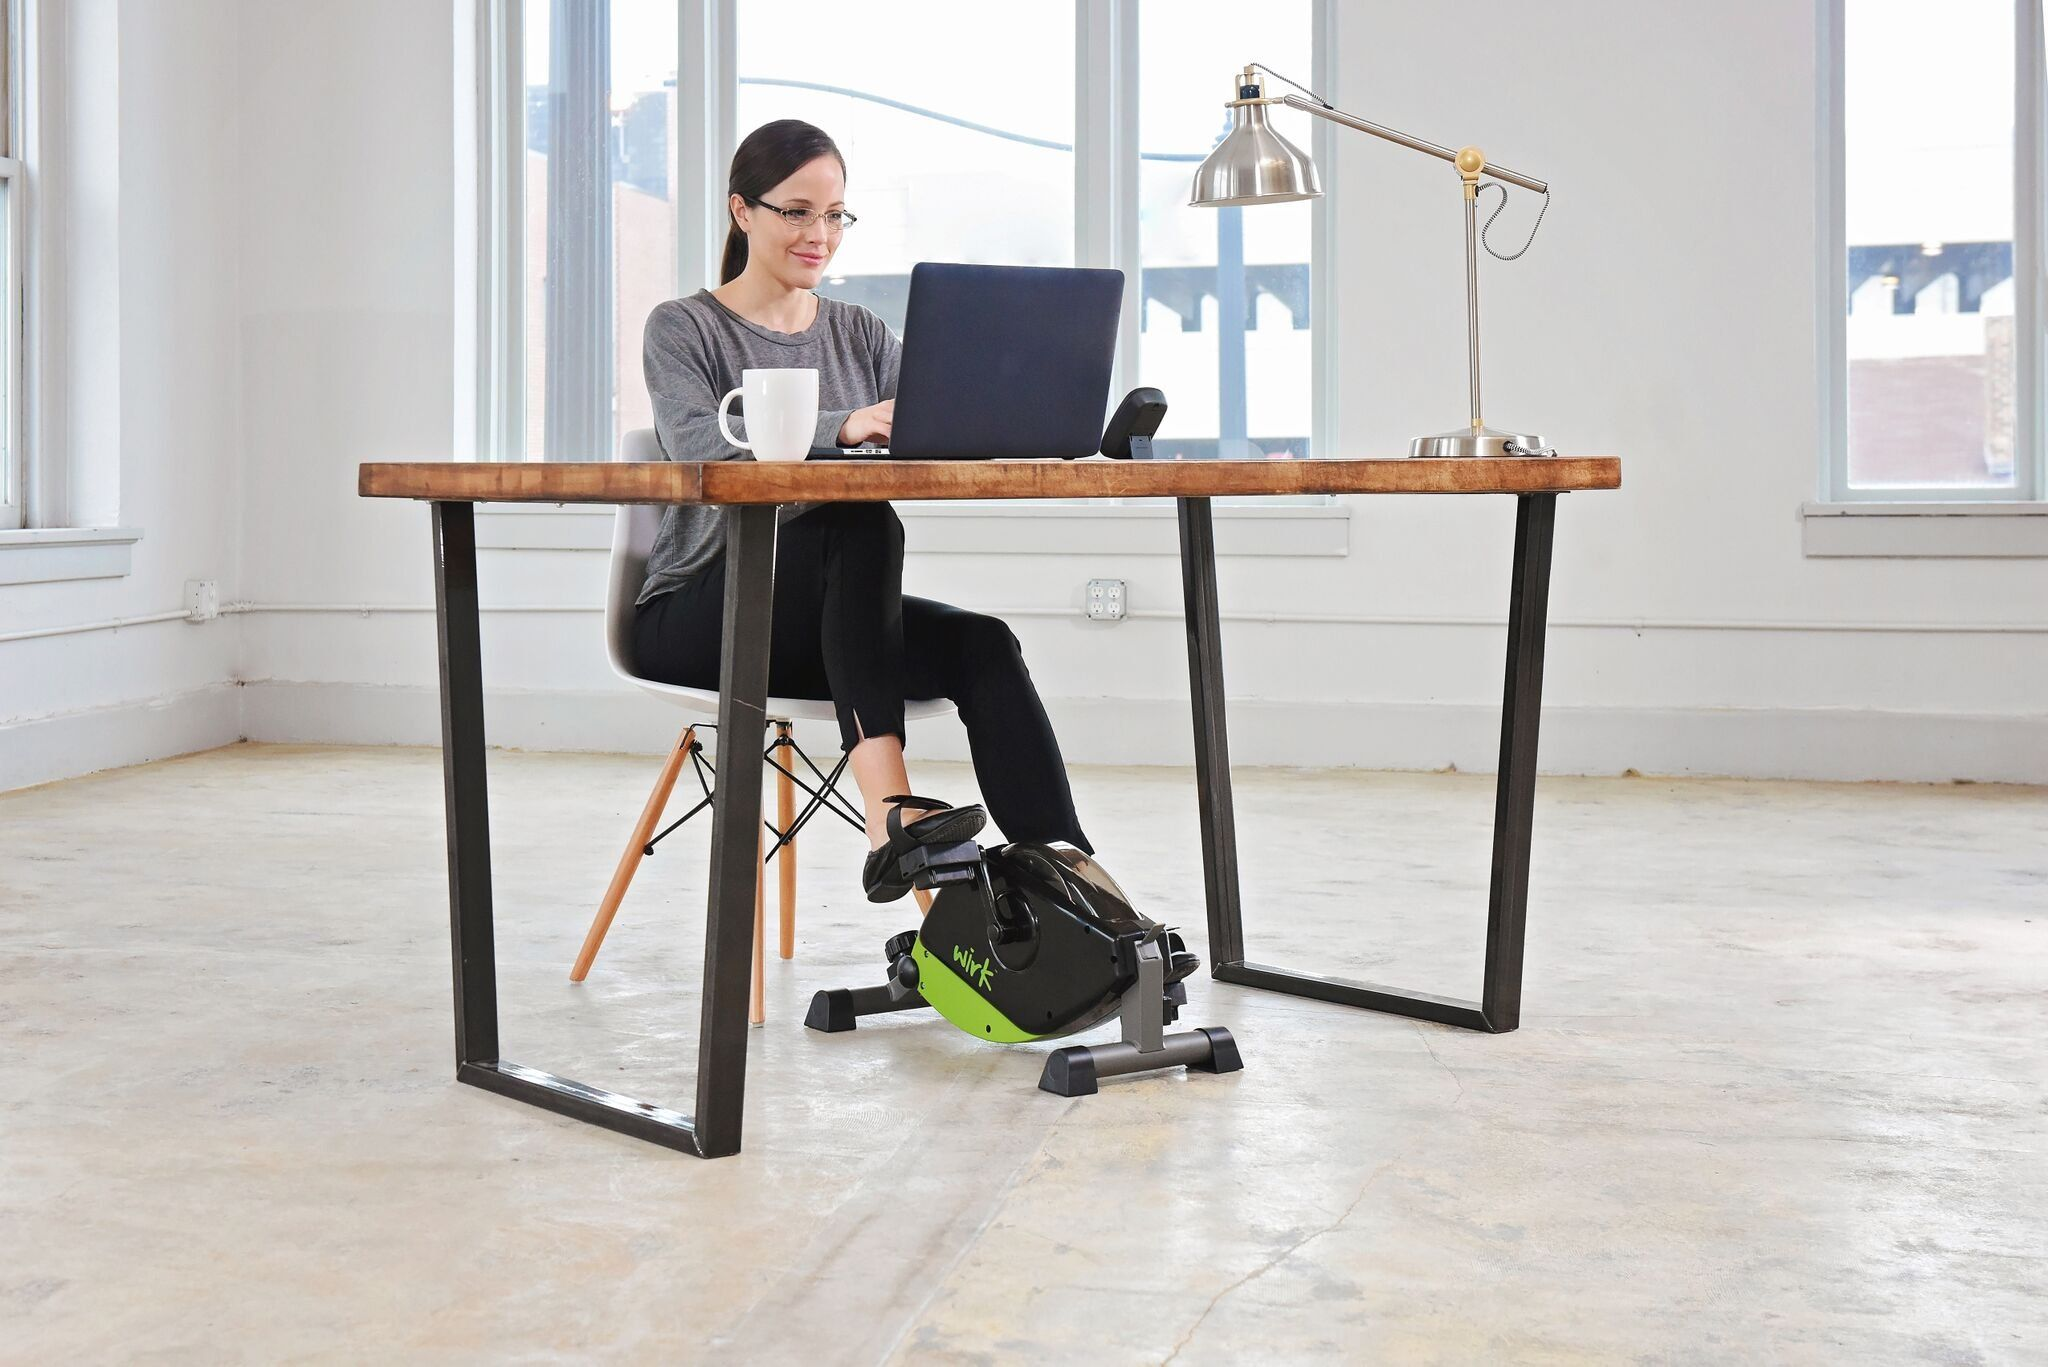 Awe Inspiring Wirk Under Desk Exercise Bike Green Products Desk Download Free Architecture Designs Intelgarnamadebymaigaardcom